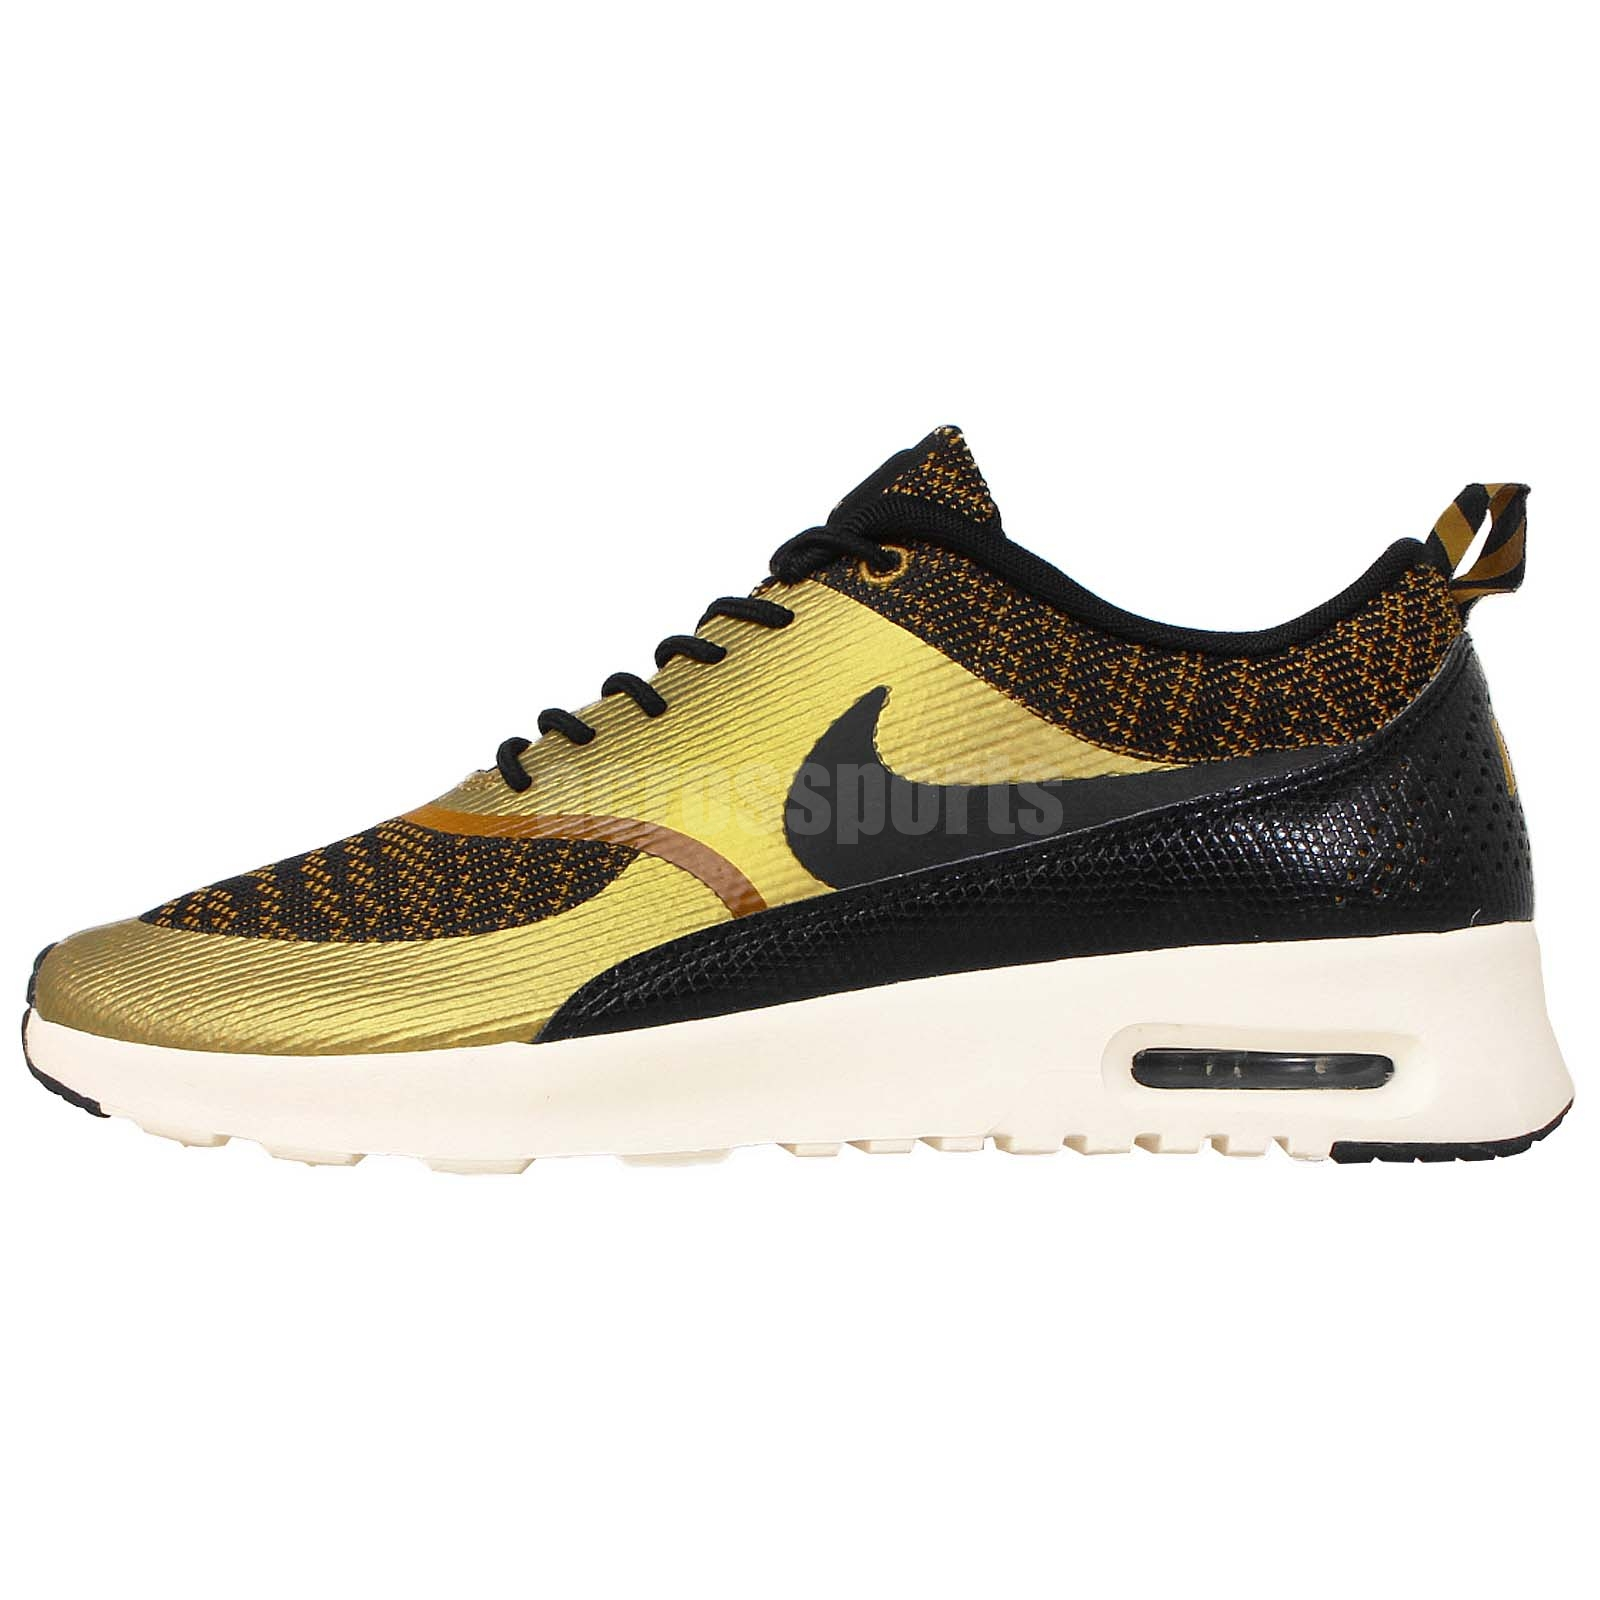 womens wmns nike air max thea kjcrd knit jacquard gold. Black Bedroom Furniture Sets. Home Design Ideas